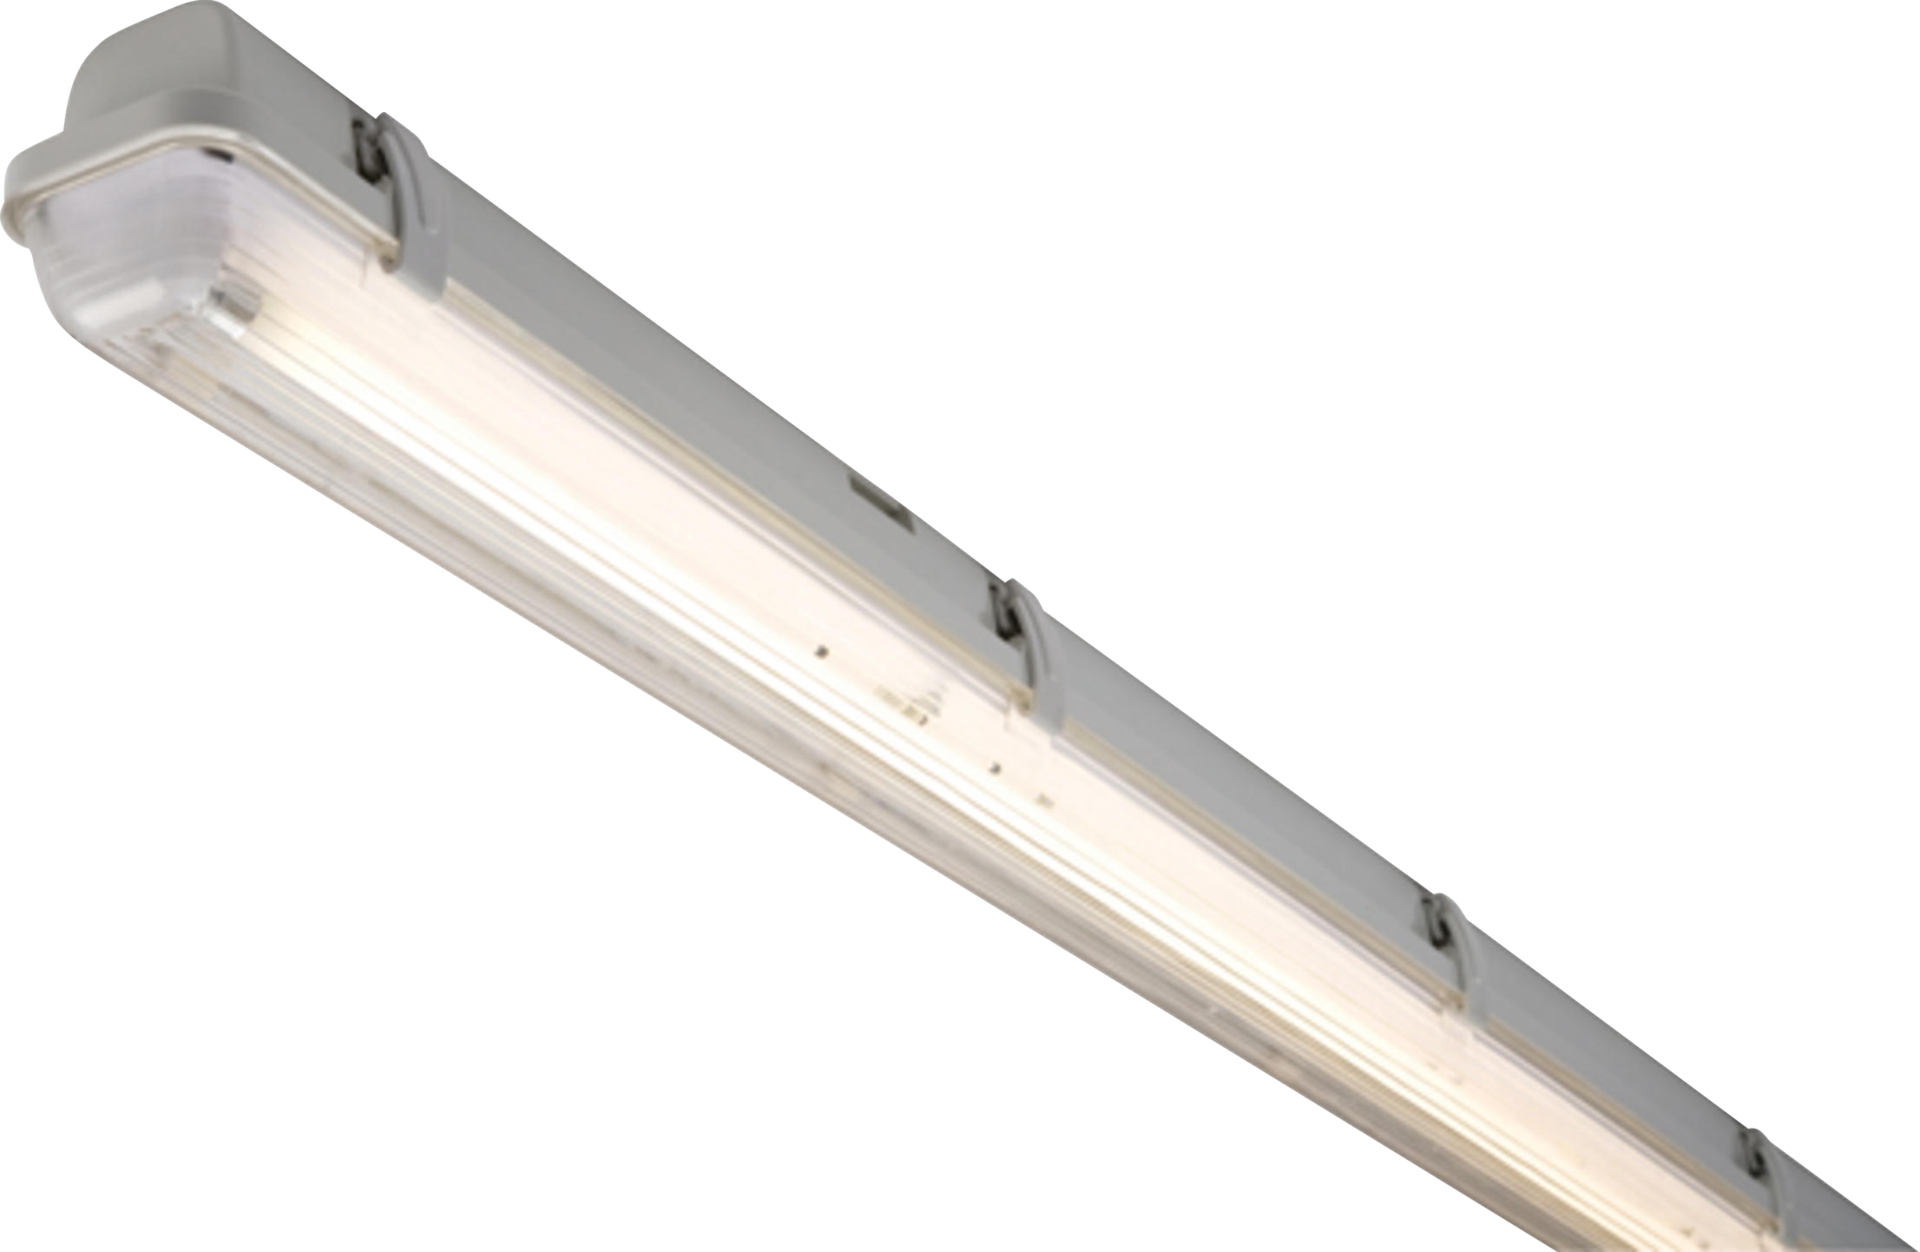 230V IP65 1X35W T5 HF Single Non-Corrosive Fluorescent Emergency Fitting 5ft